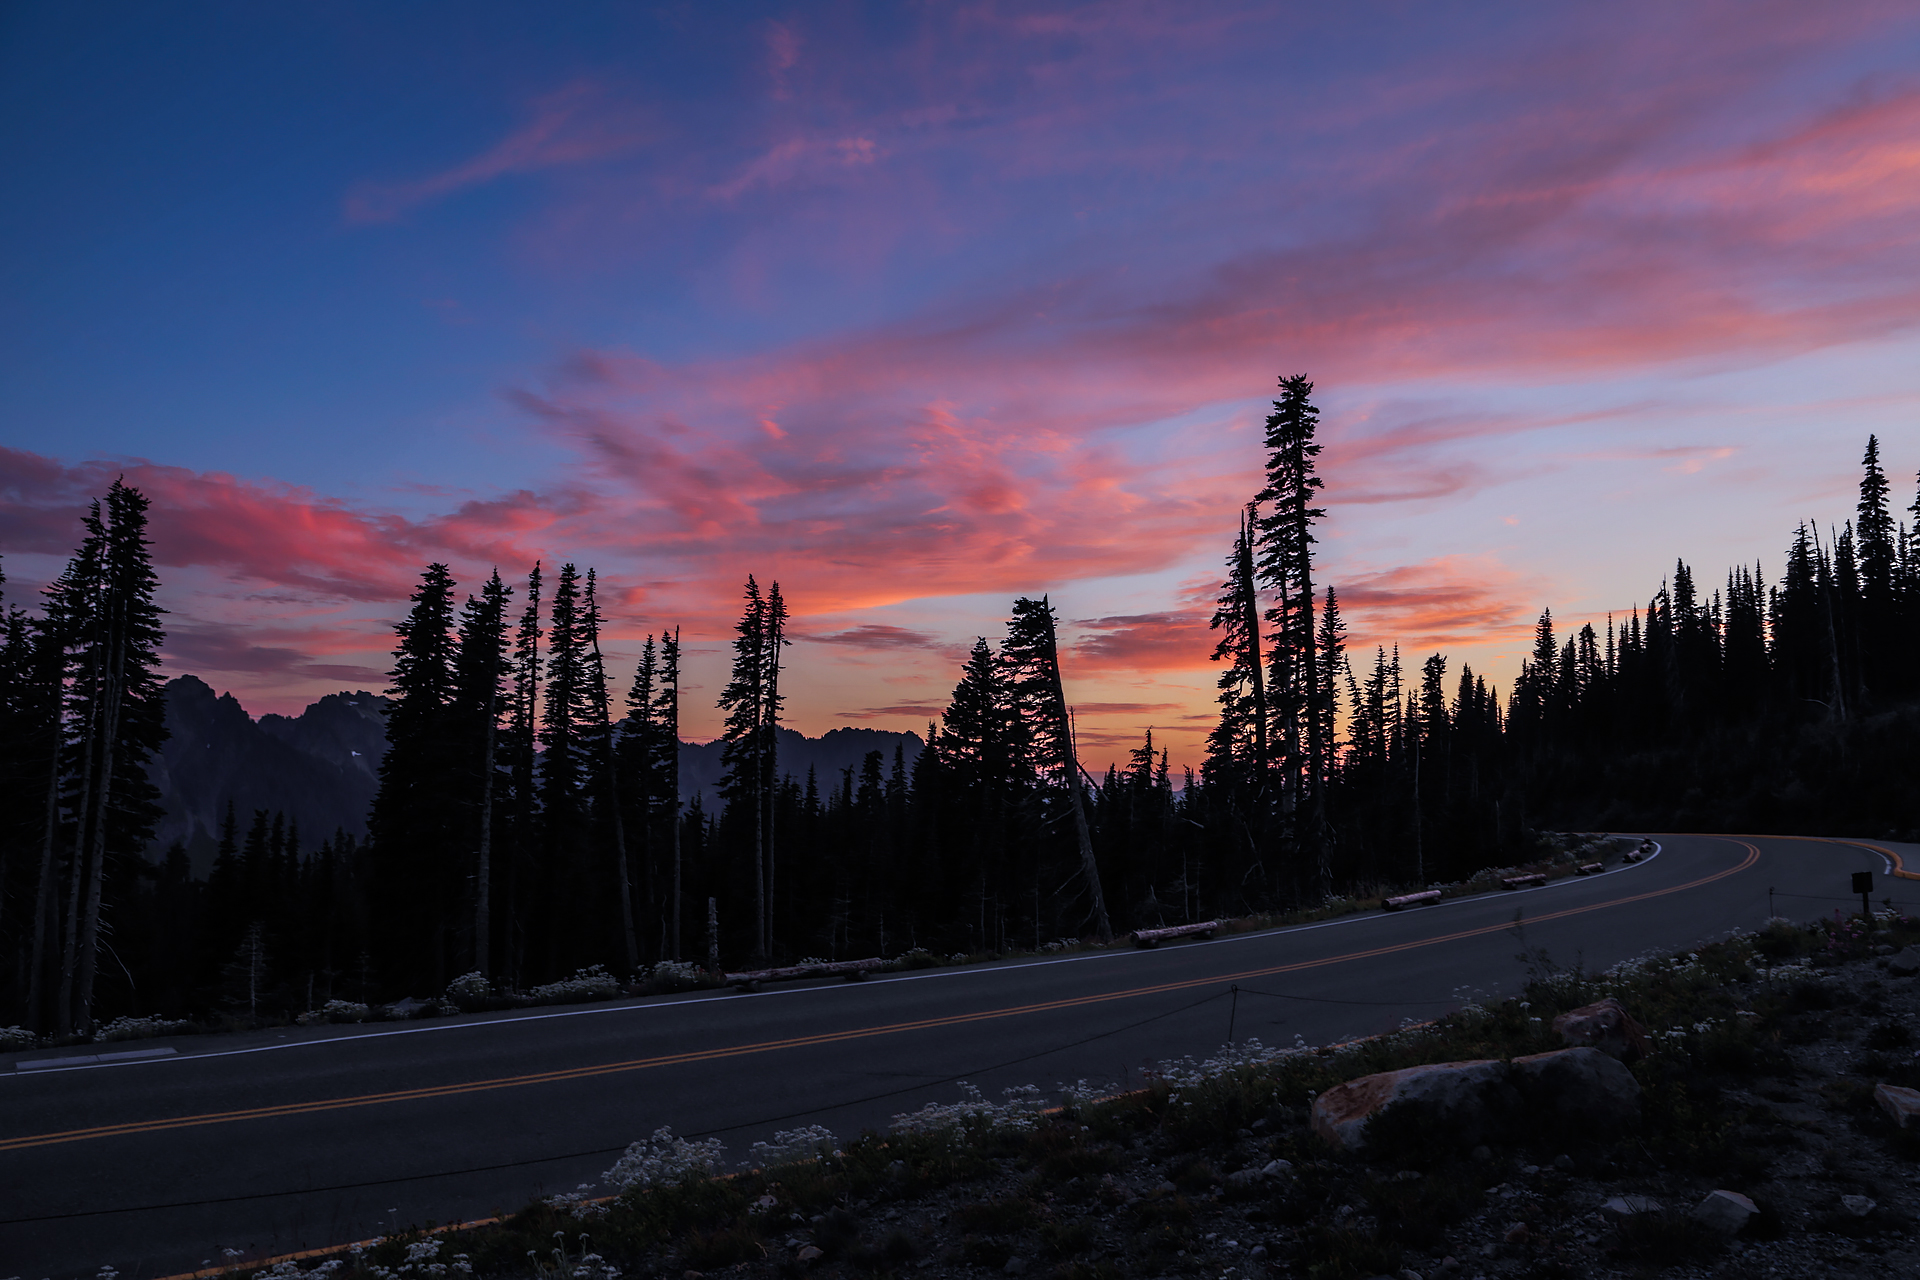 20130821-Mount-Rainier-Day-1-219.jpg